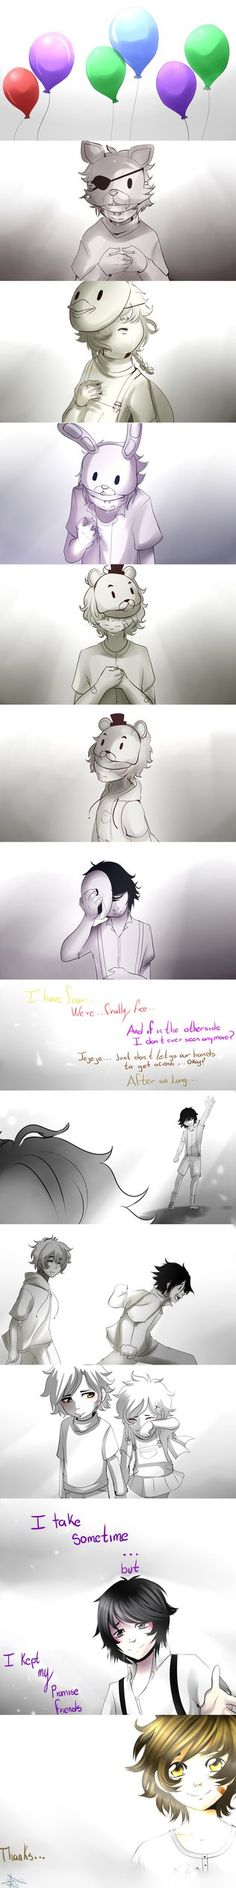 sadness and... by Kamik91 on DeviantArt